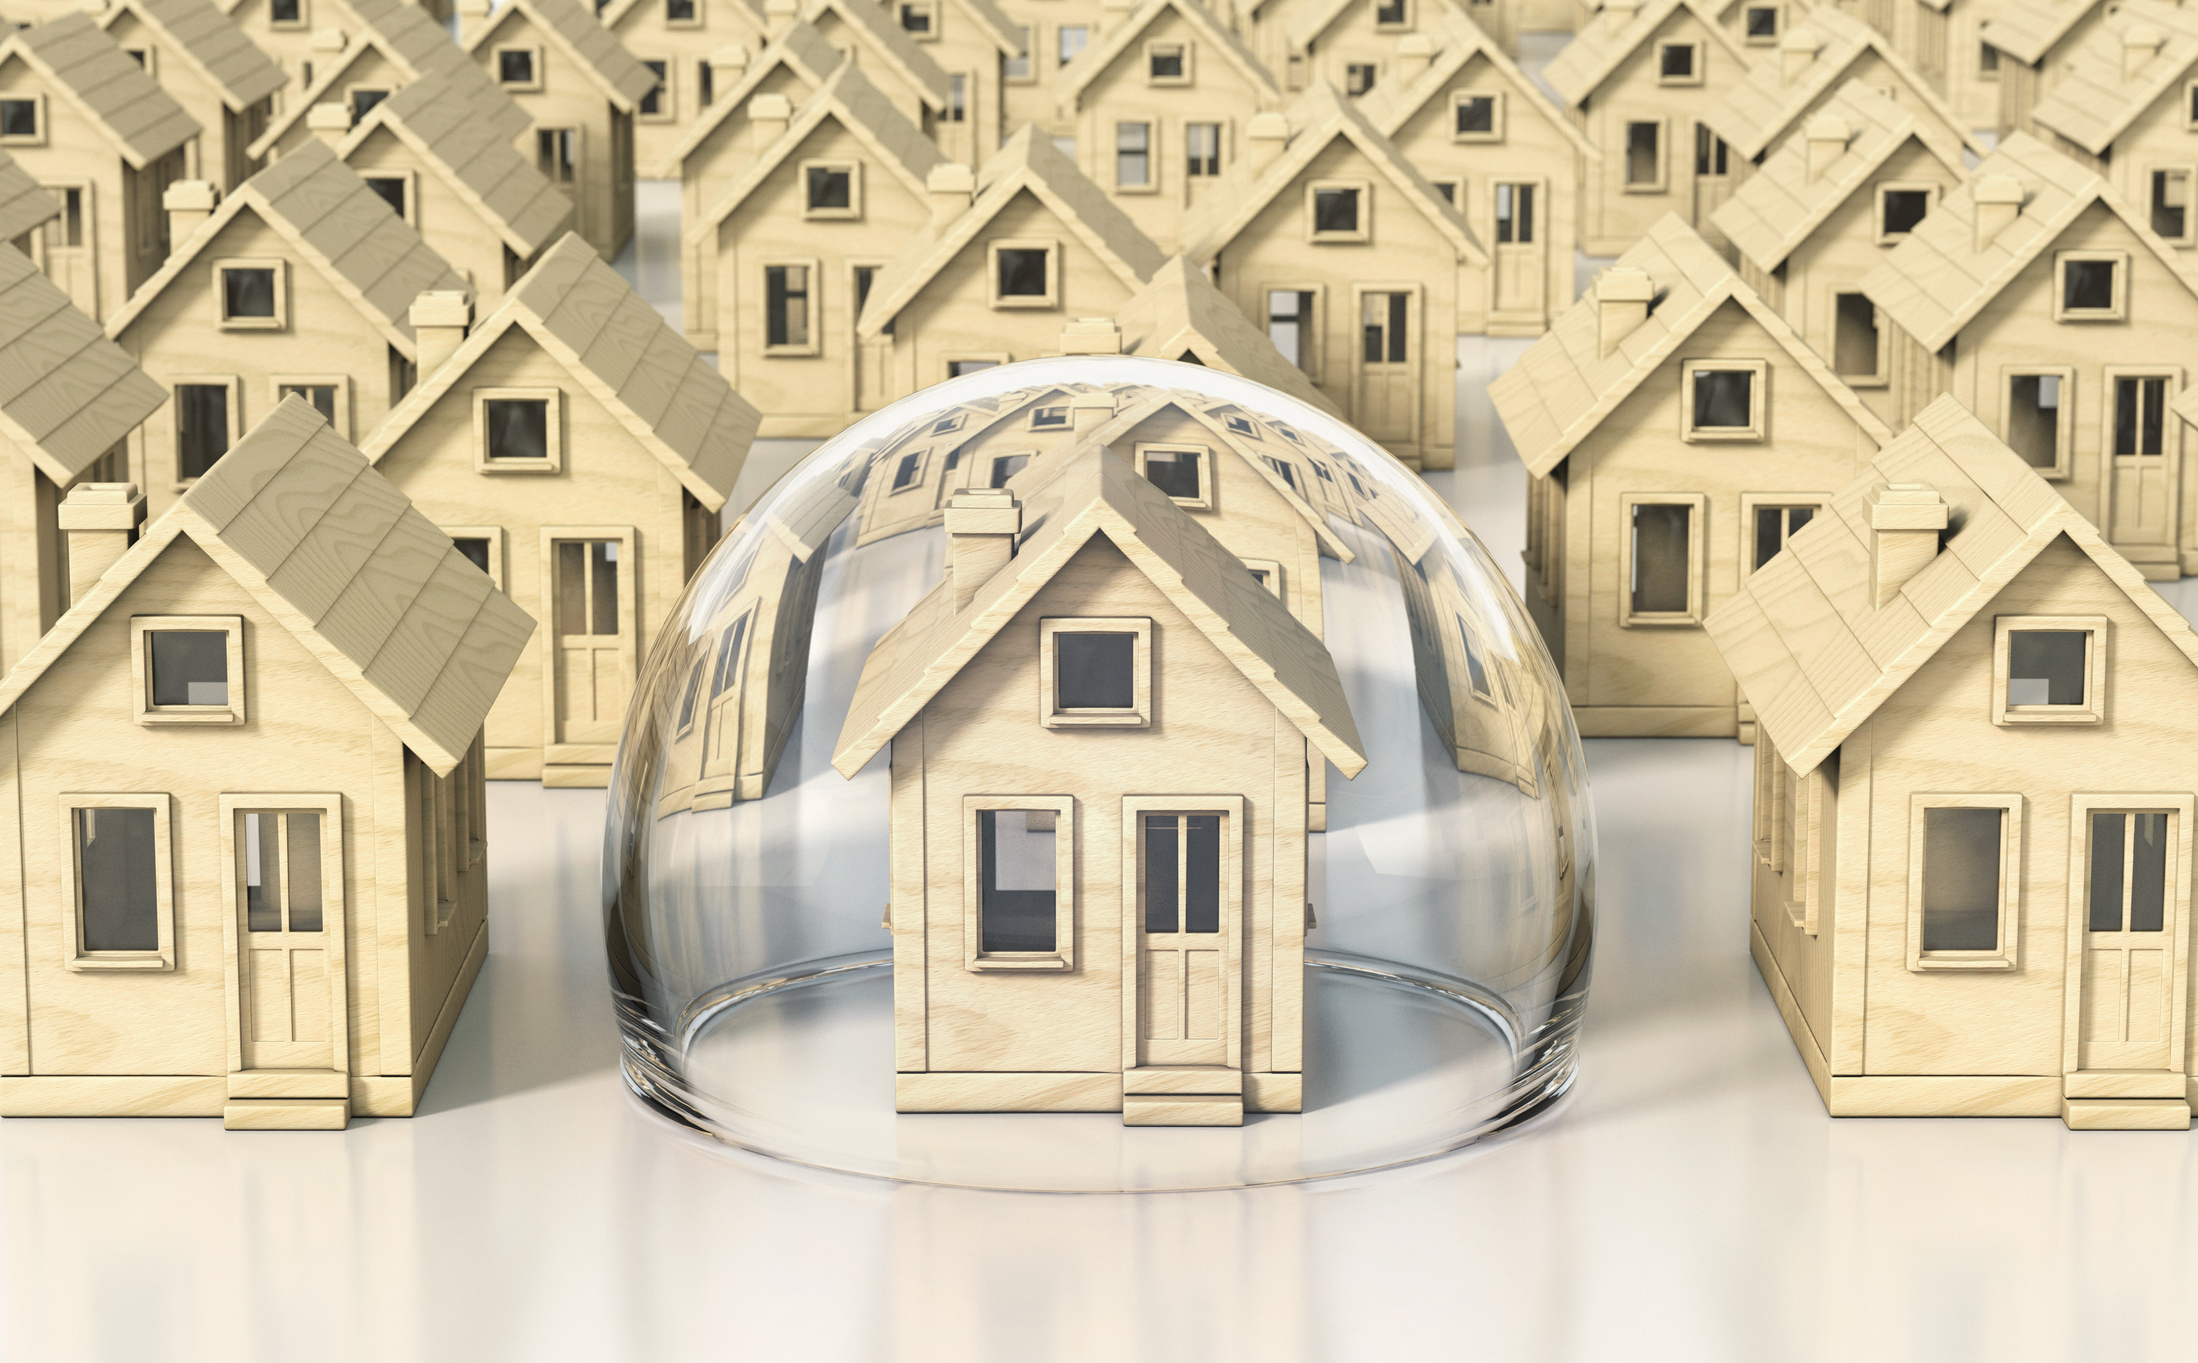 Toy wooden miniature houses, one under glass dome